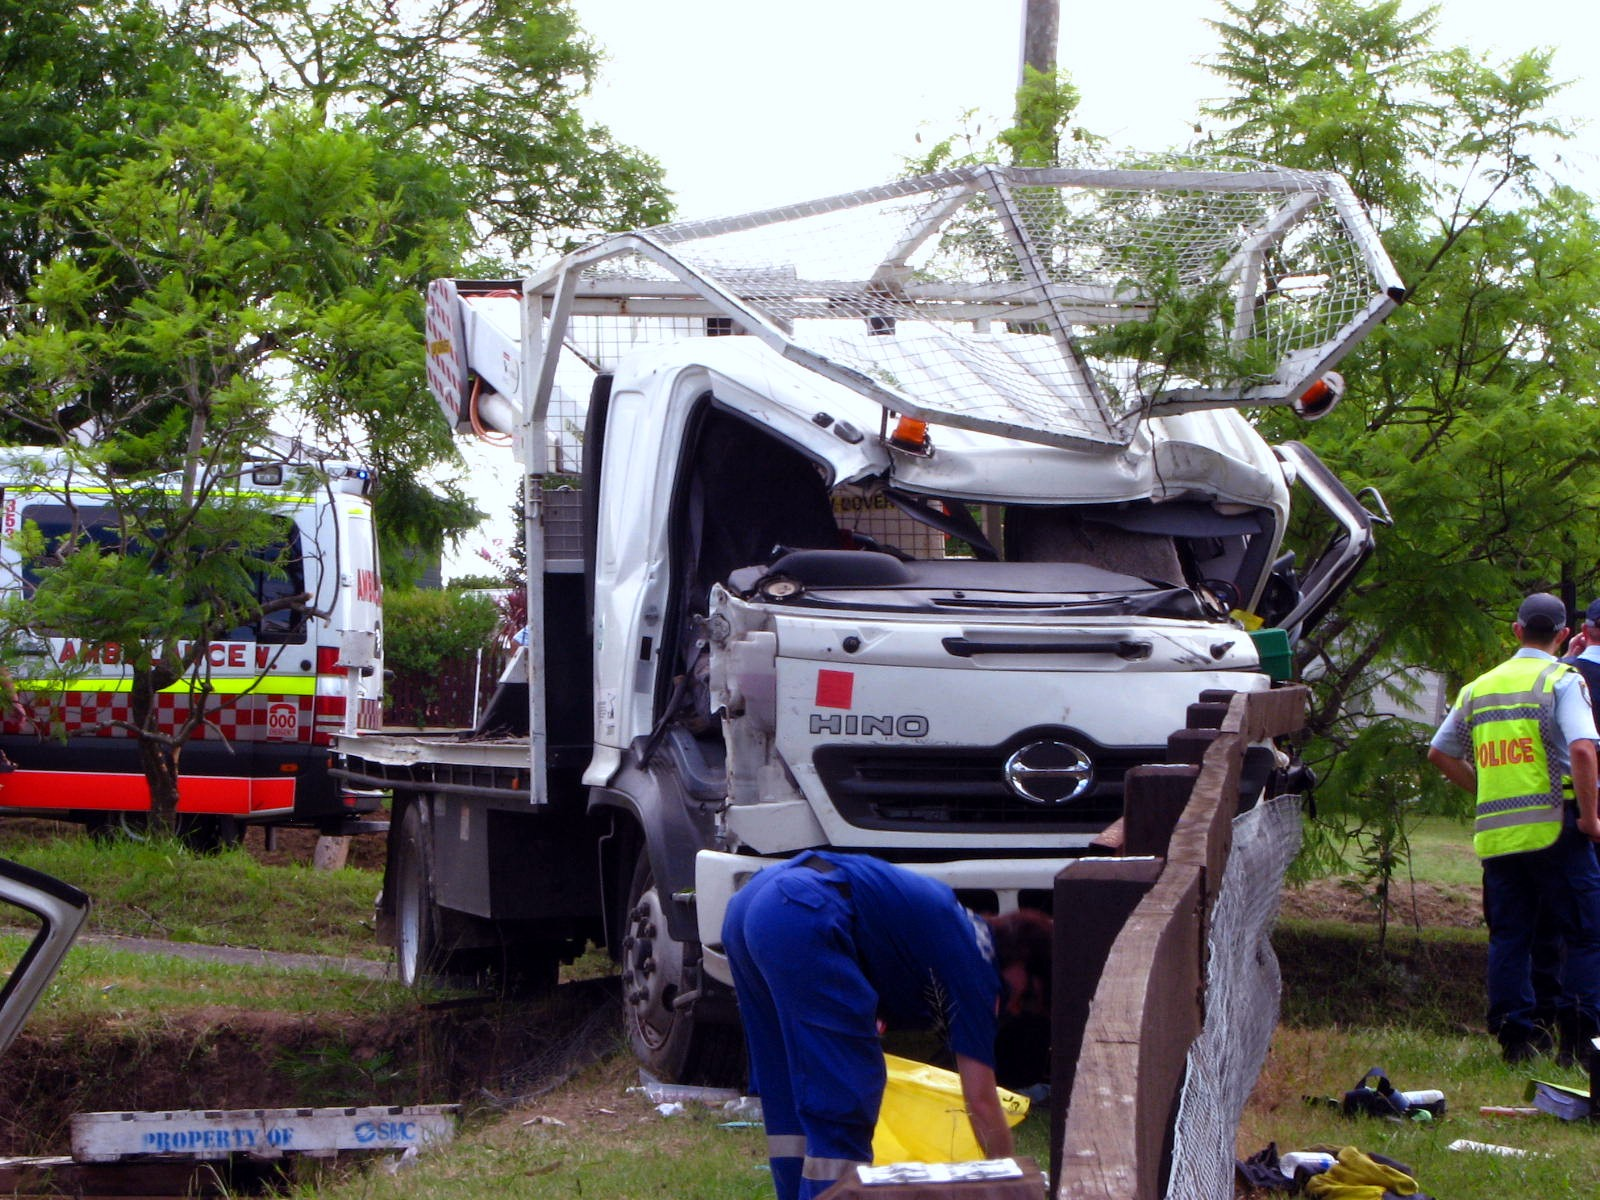 File:The wrecked Hino truck - Flickr - Highway Patrol Images (1) jpg